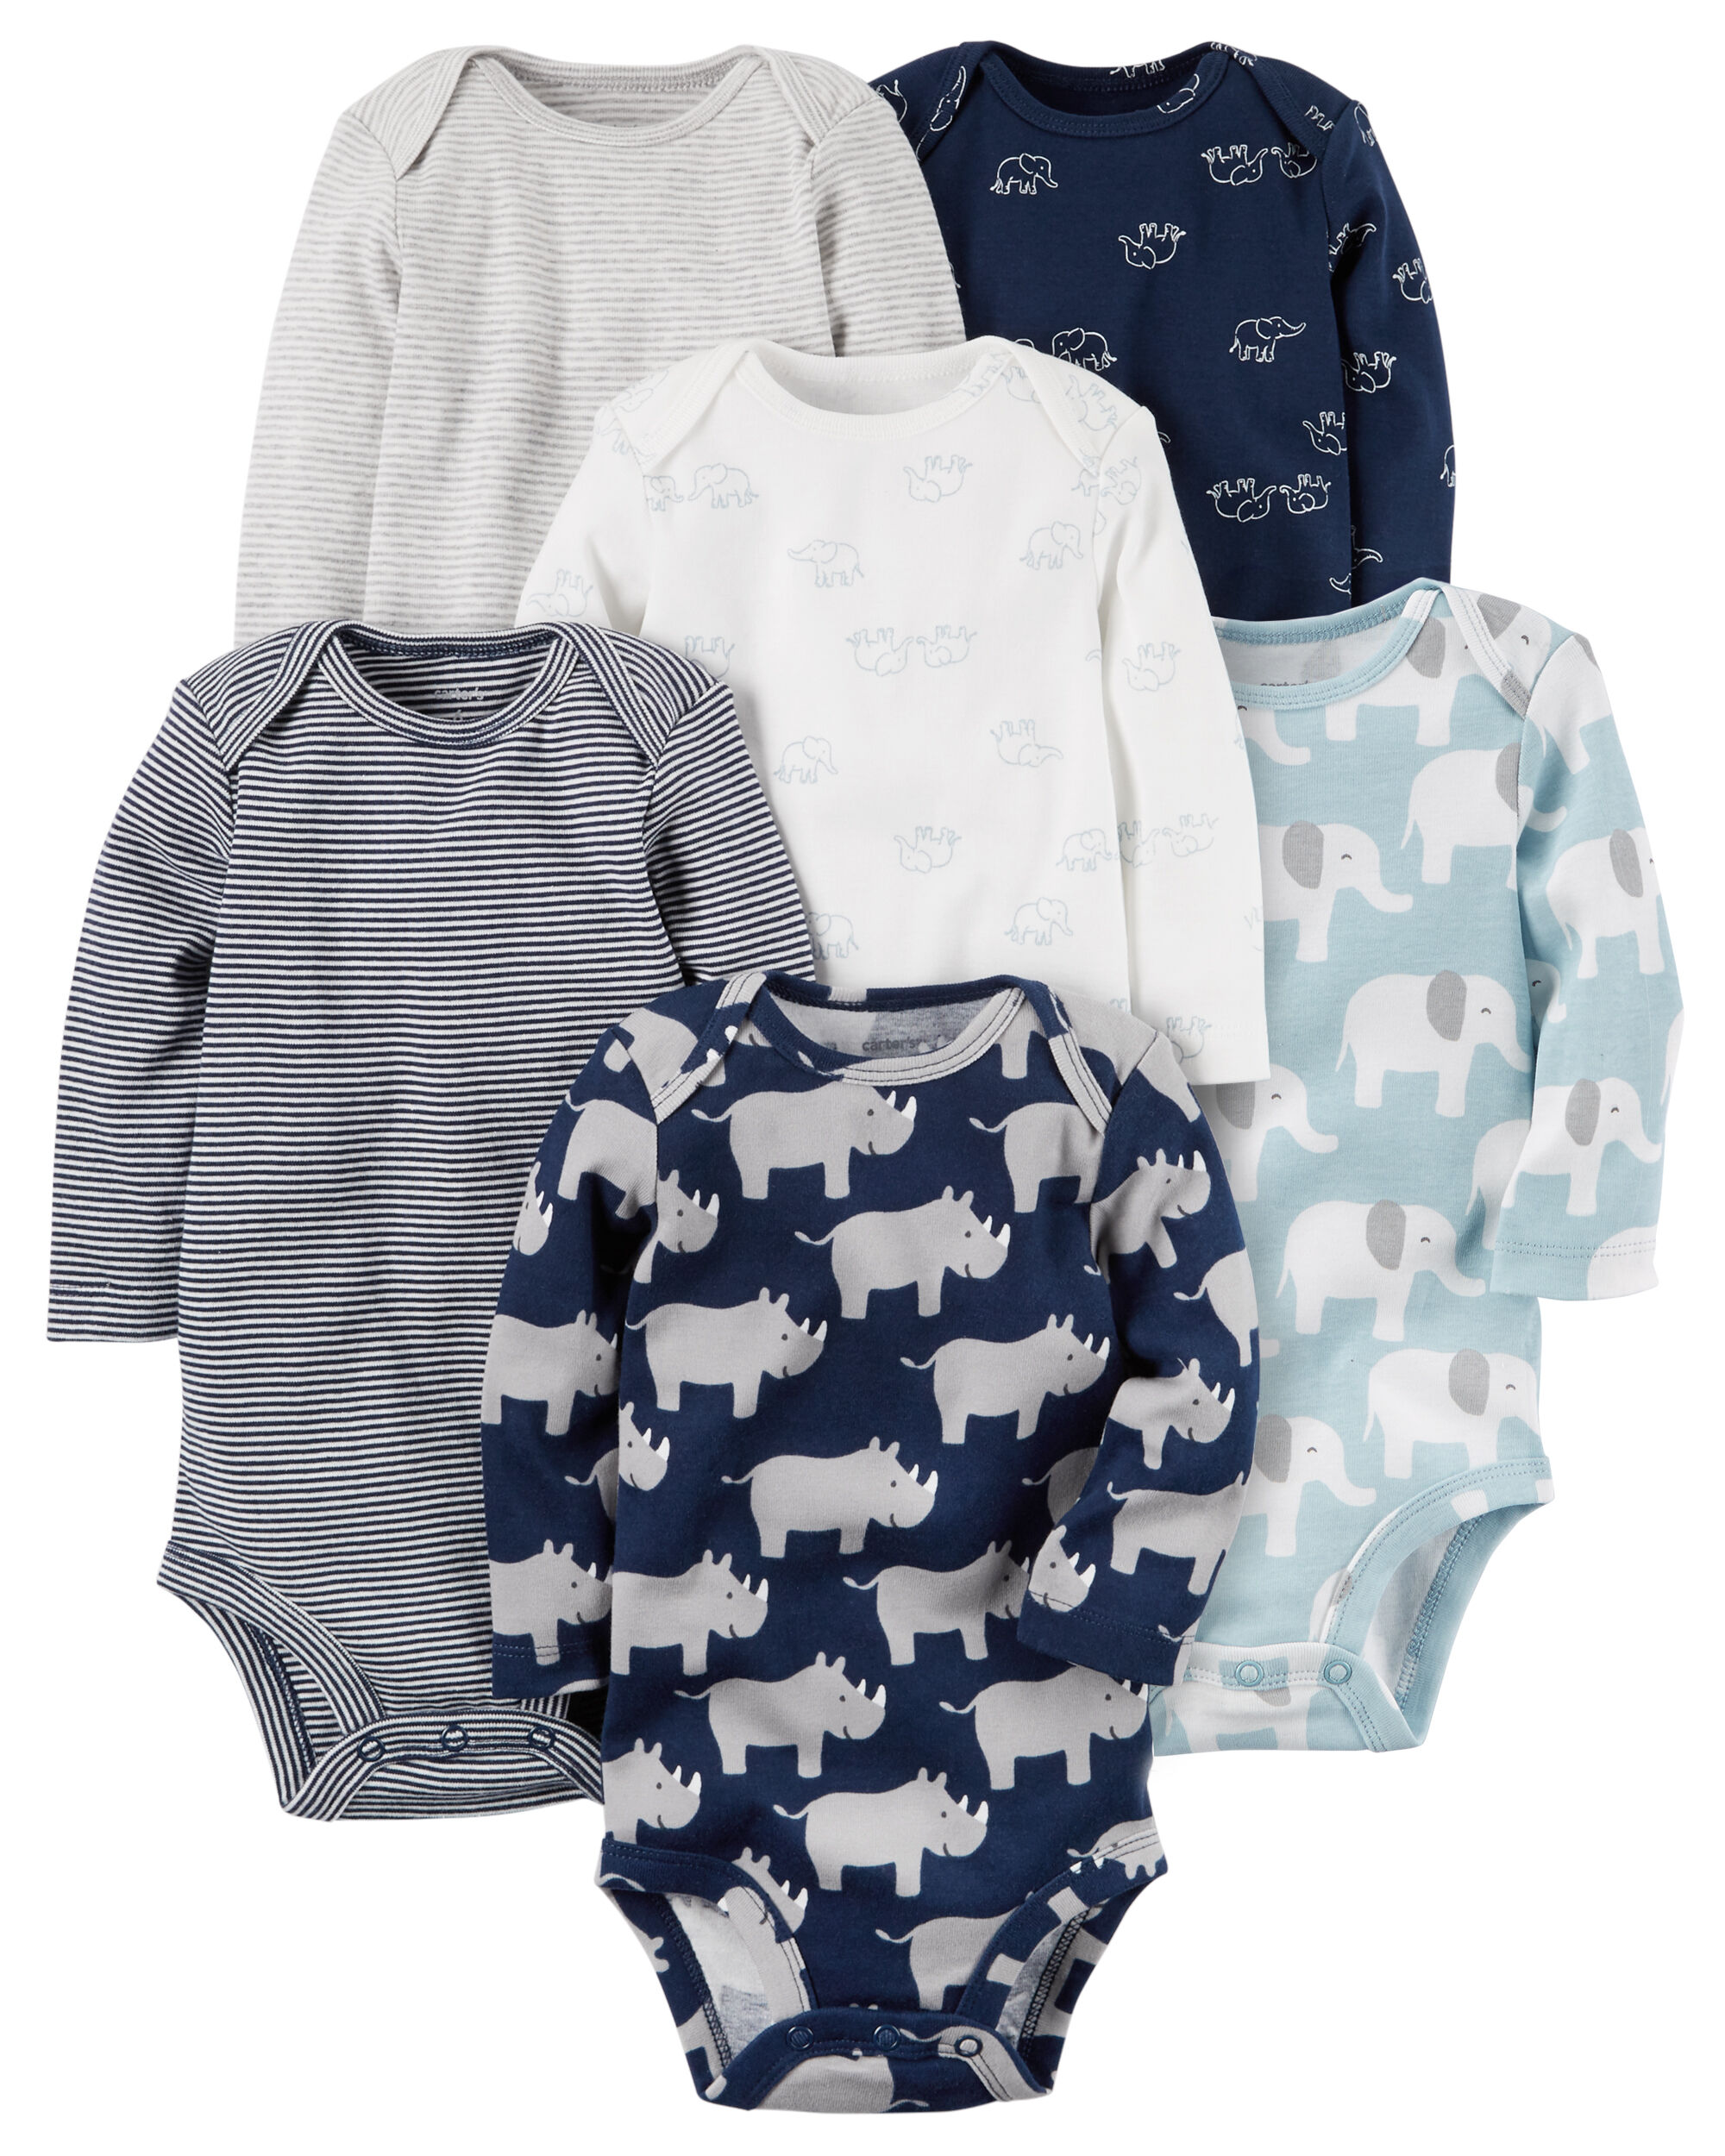 Luxury Design Of Baby Clothes with Fold Over Cuffs ...